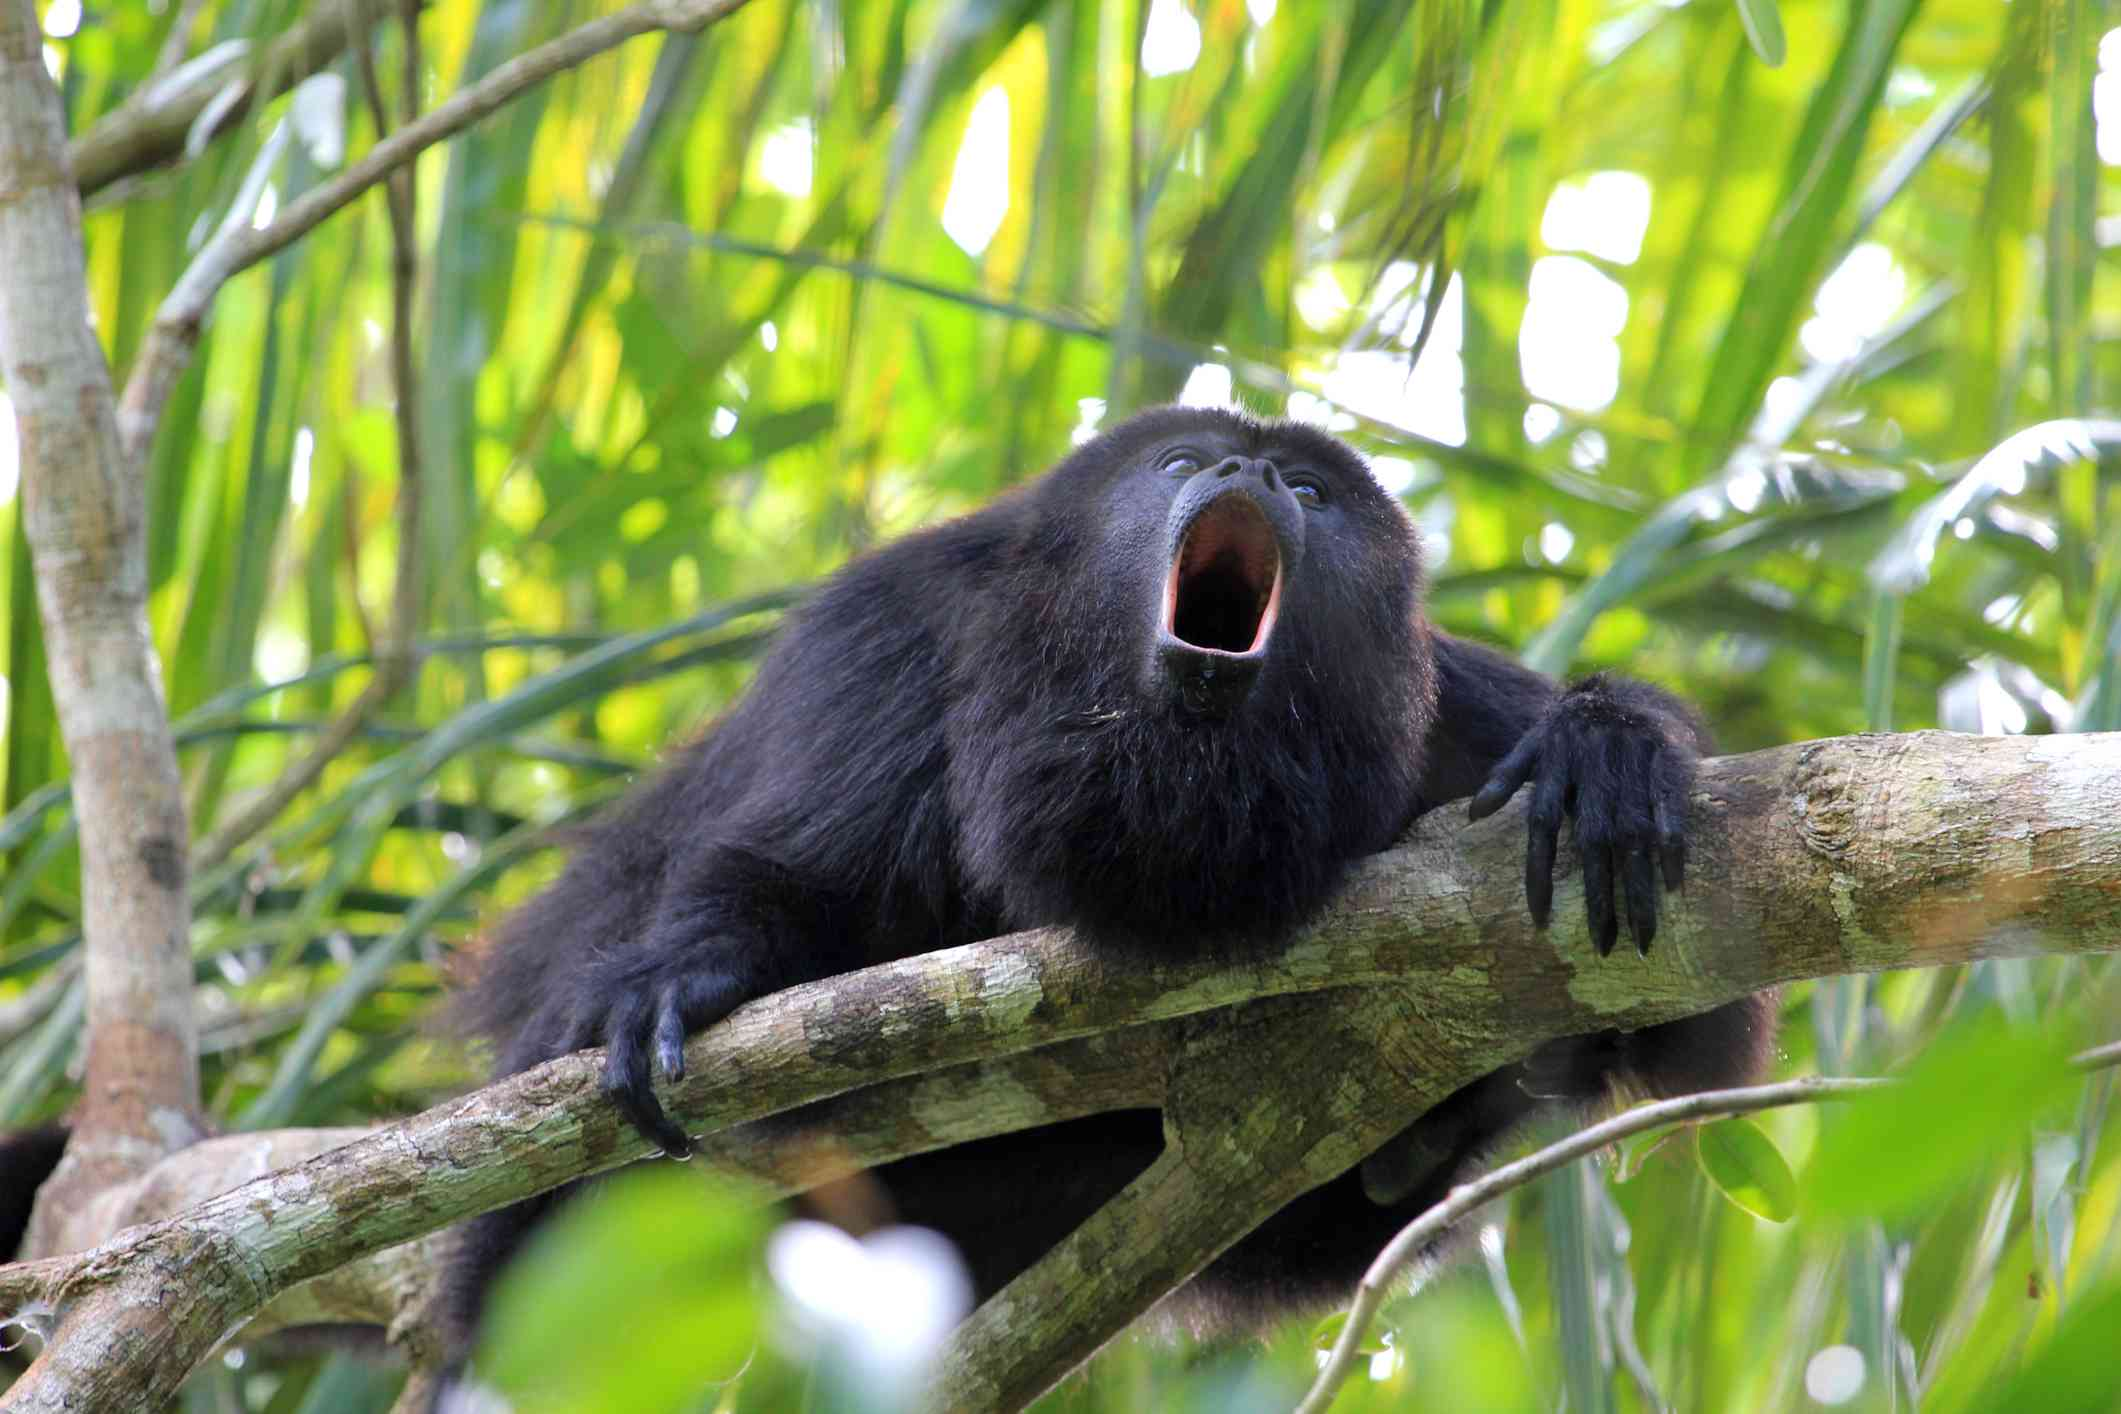 howler monkey hanging on a tree branch with its mouth open in a roar